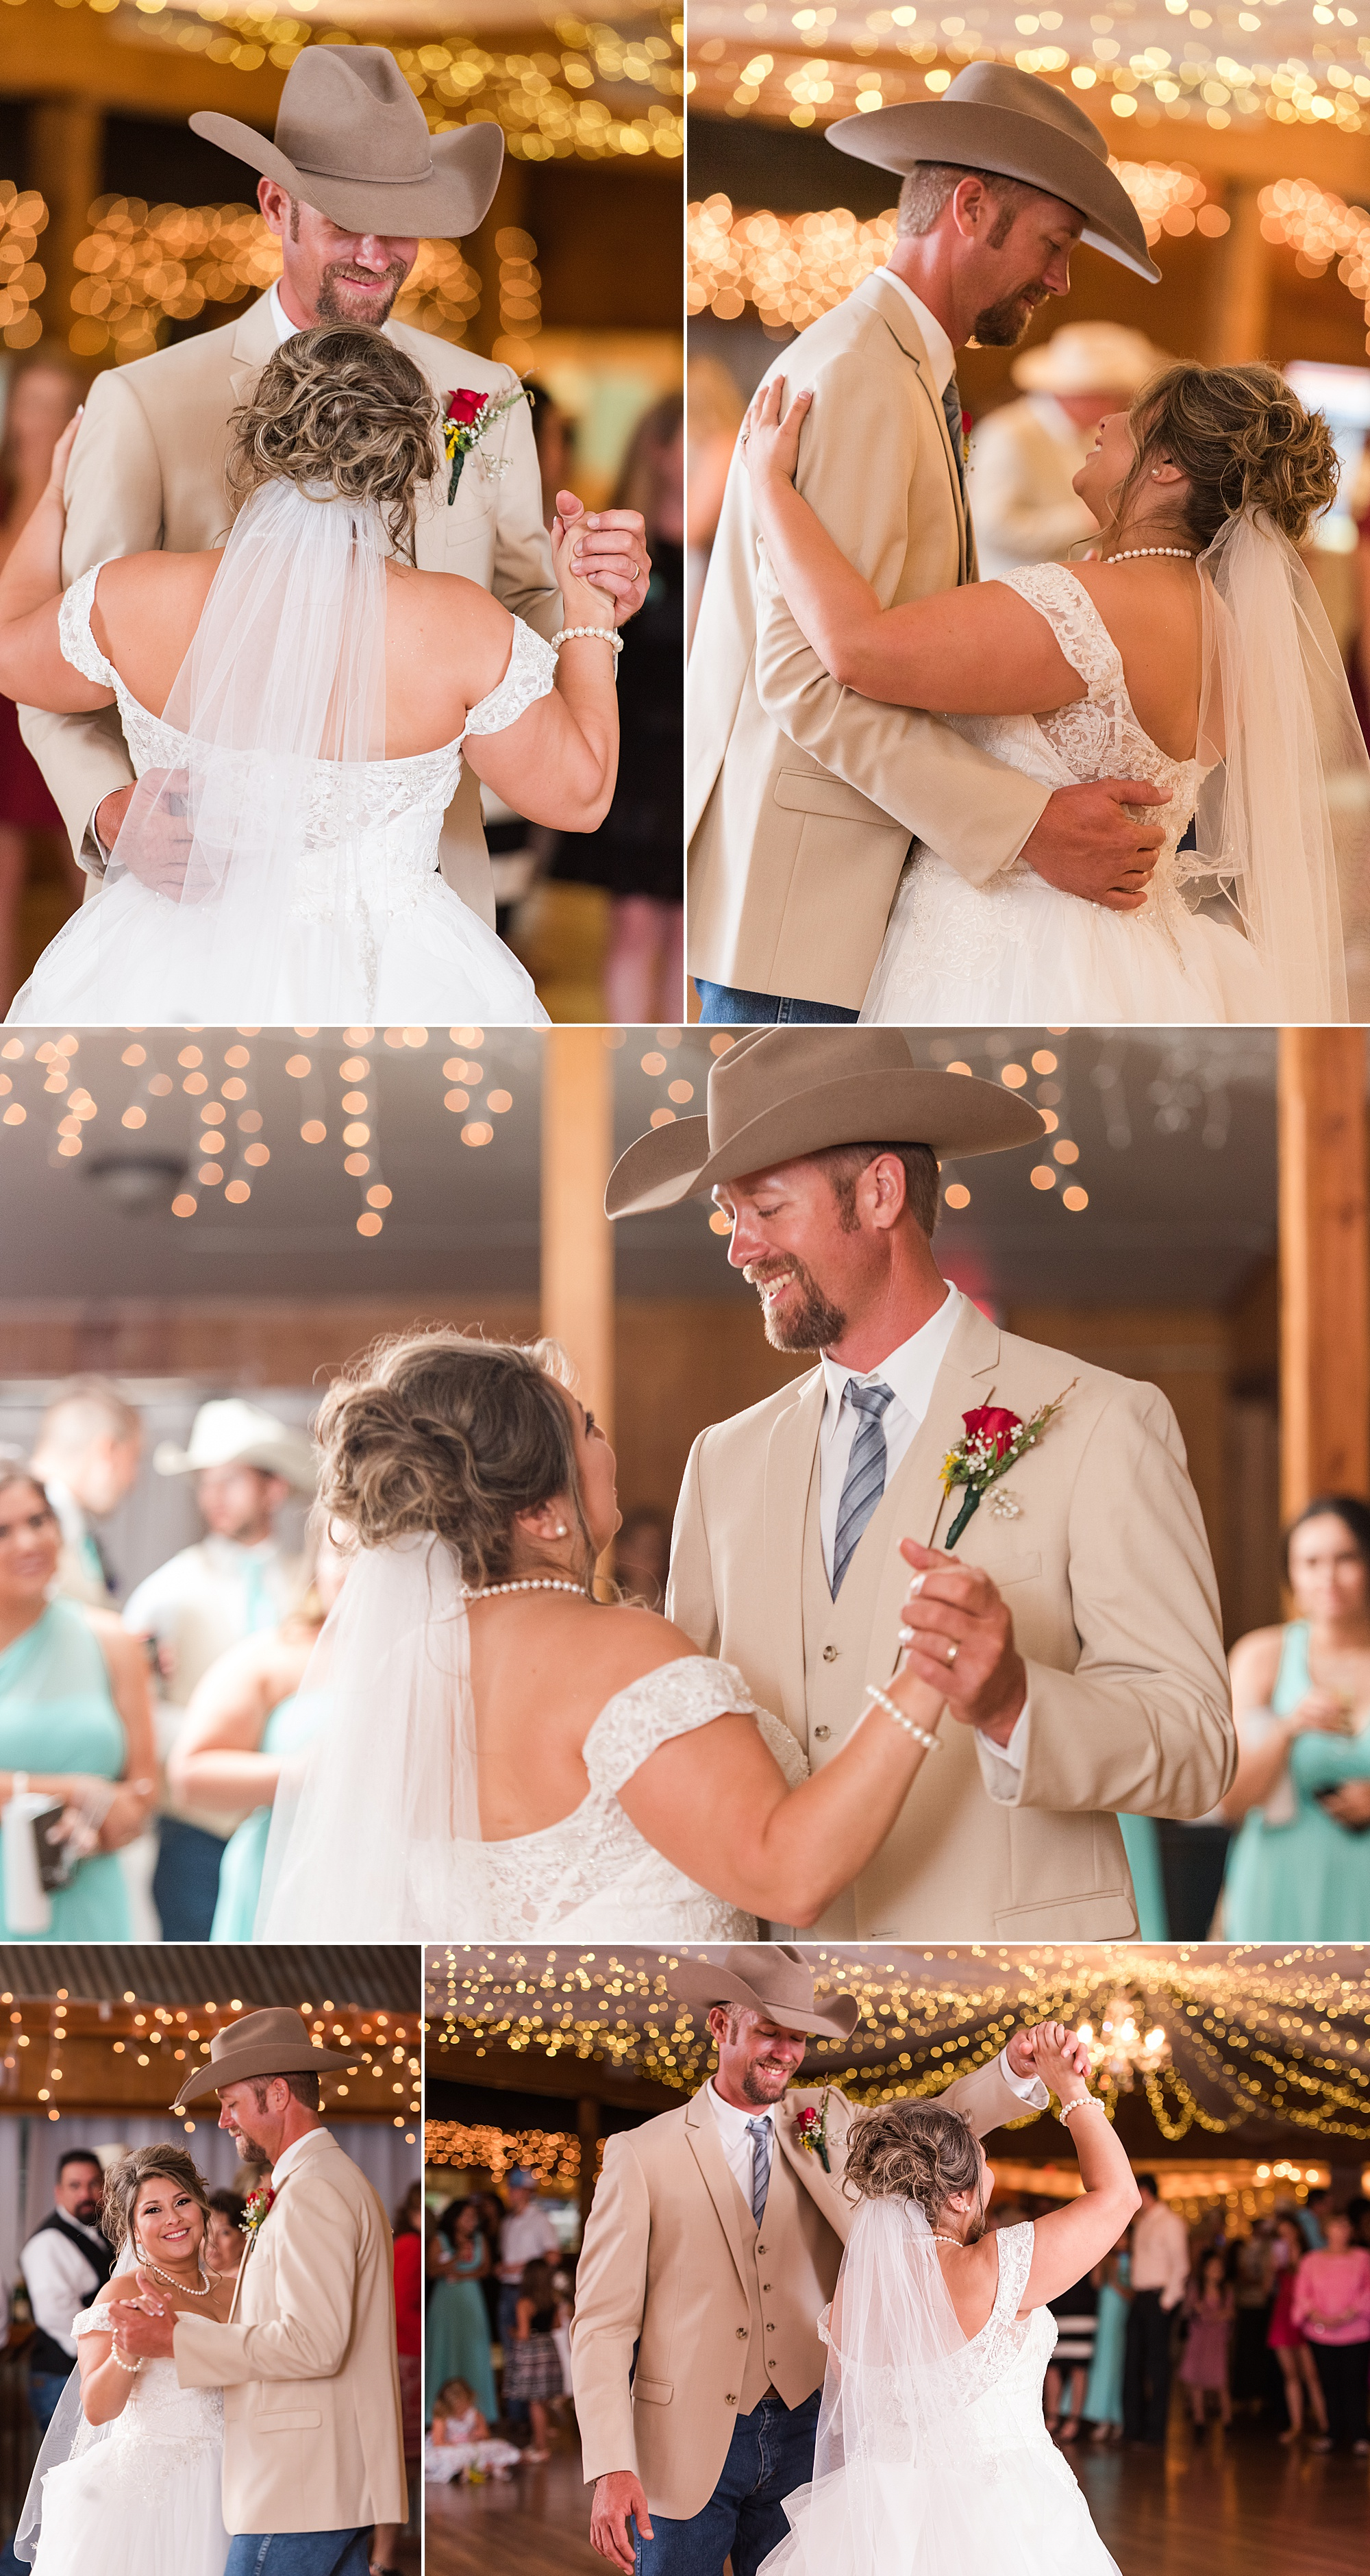 Bride,Carly Barton Photography,Eagle Dancer Ranch,Texas,Wedding,ceremony,groom,reception,